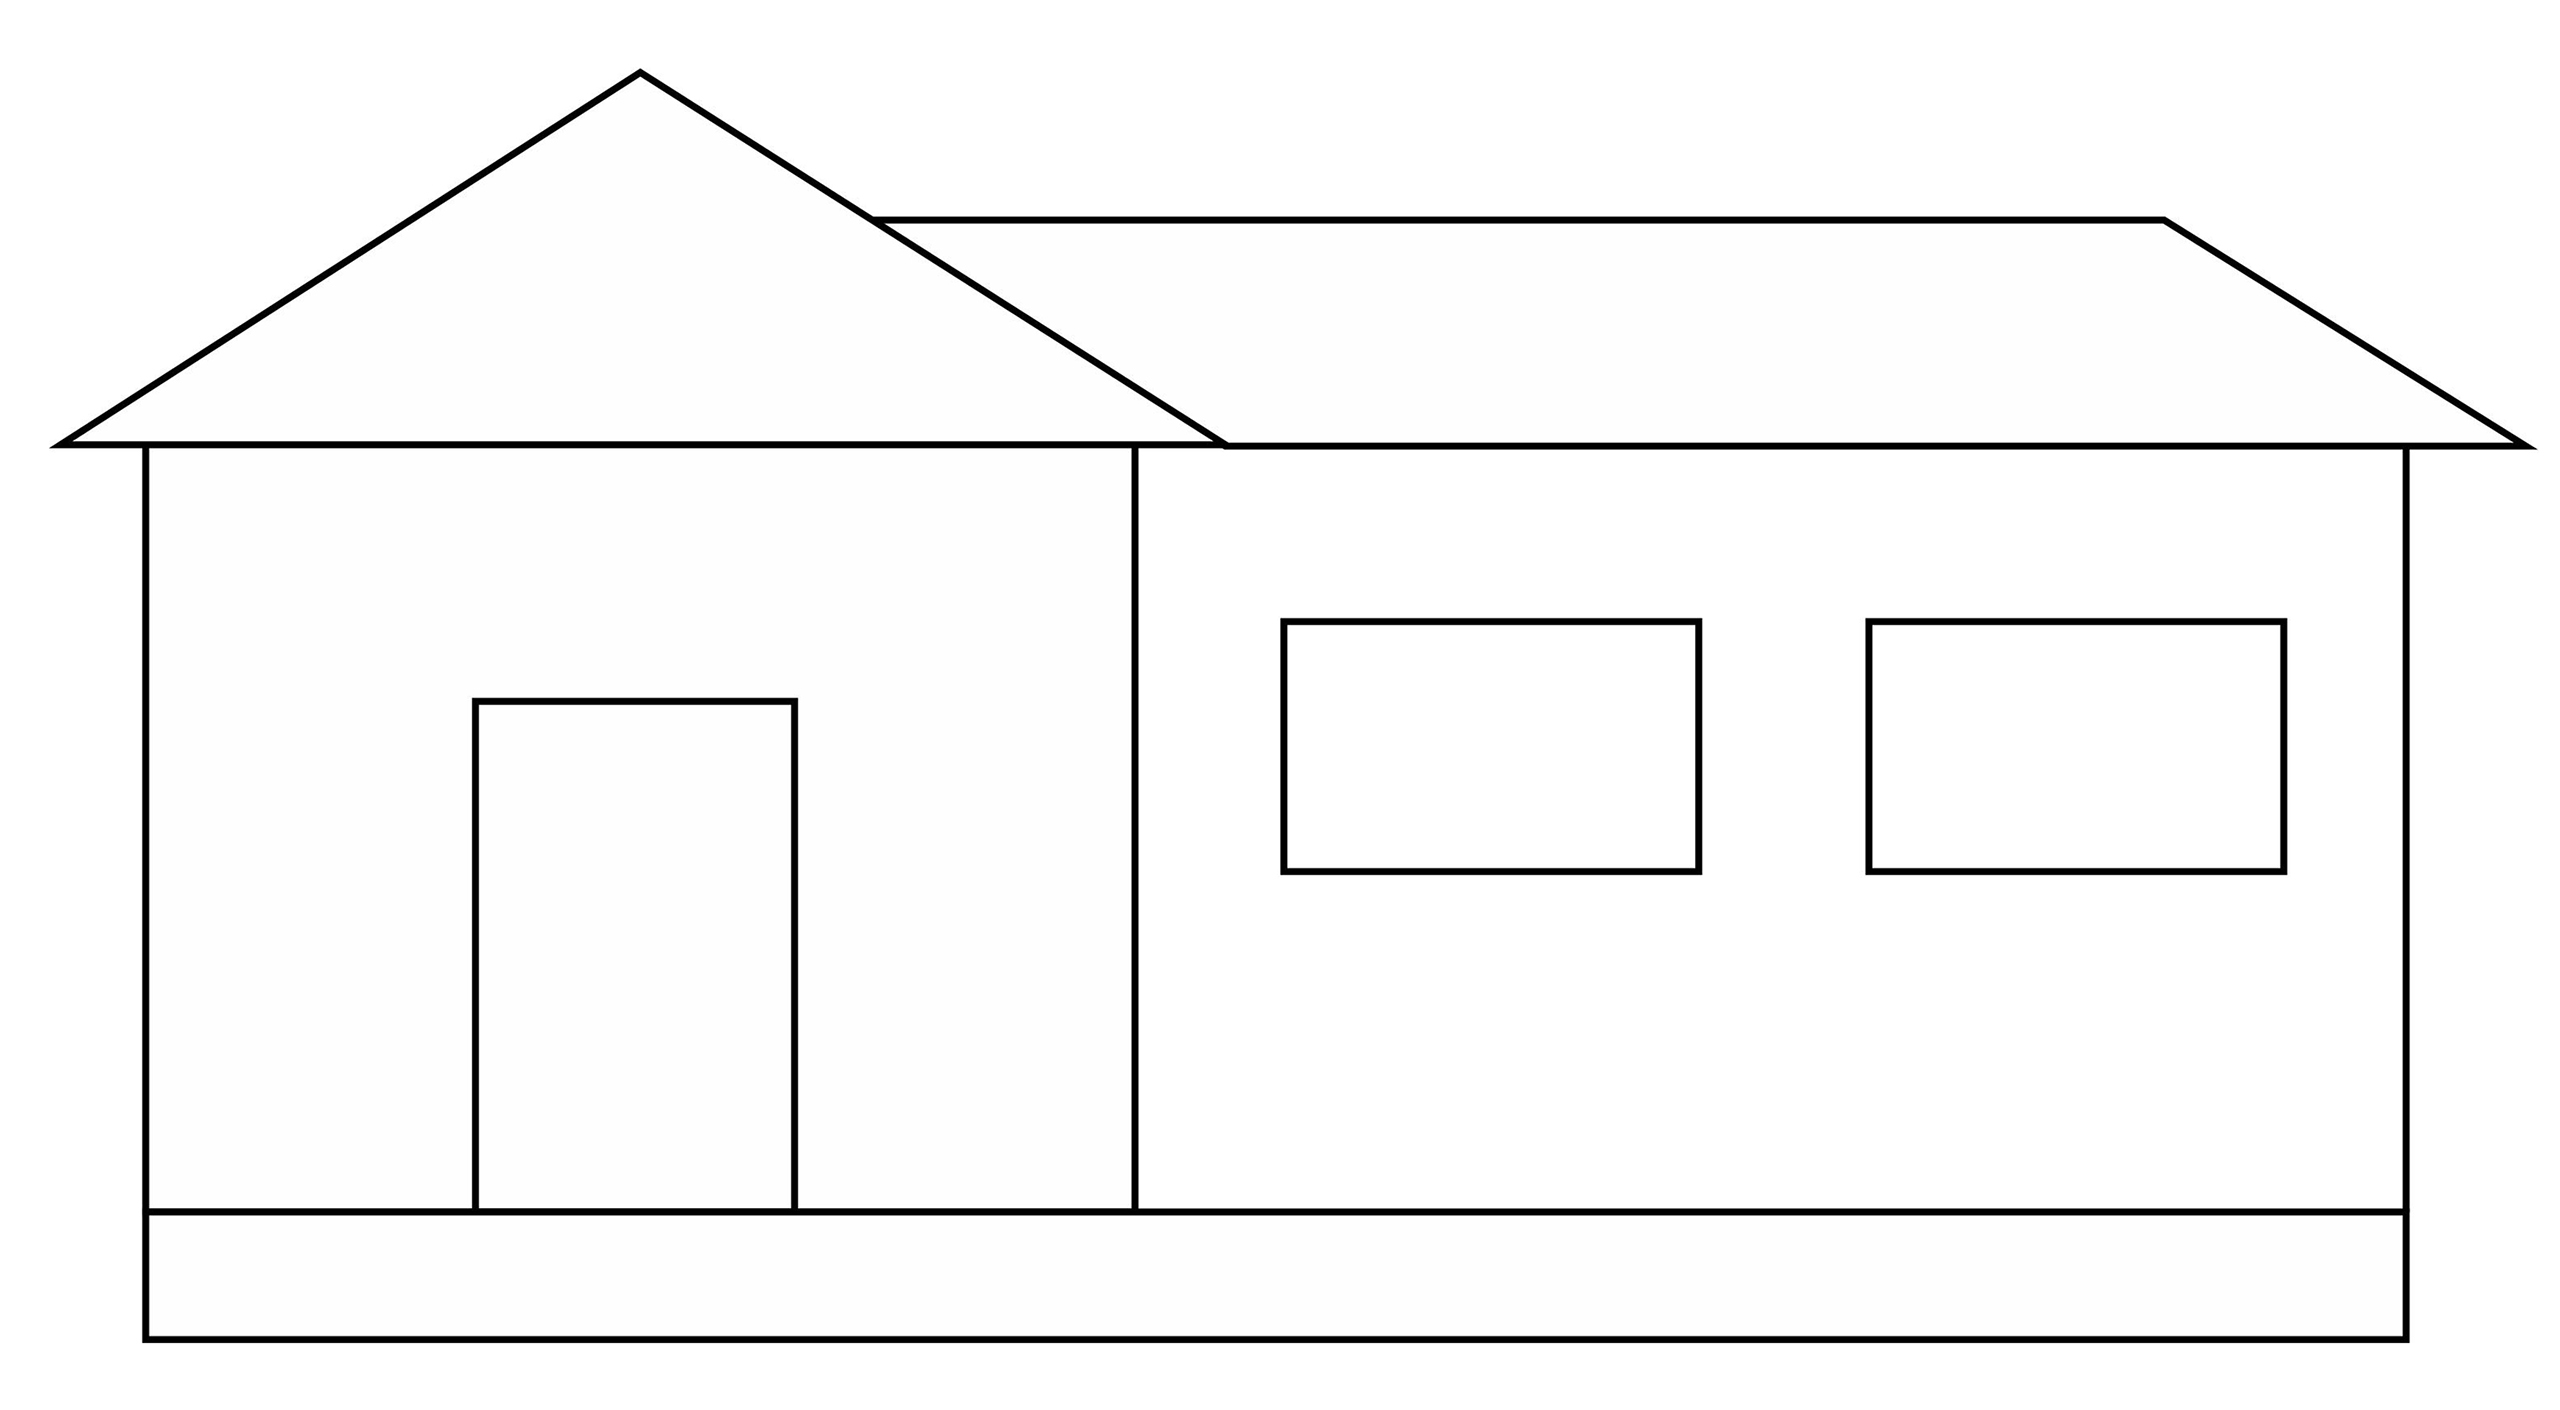 Line Art Images Of Houses : House on a foundation